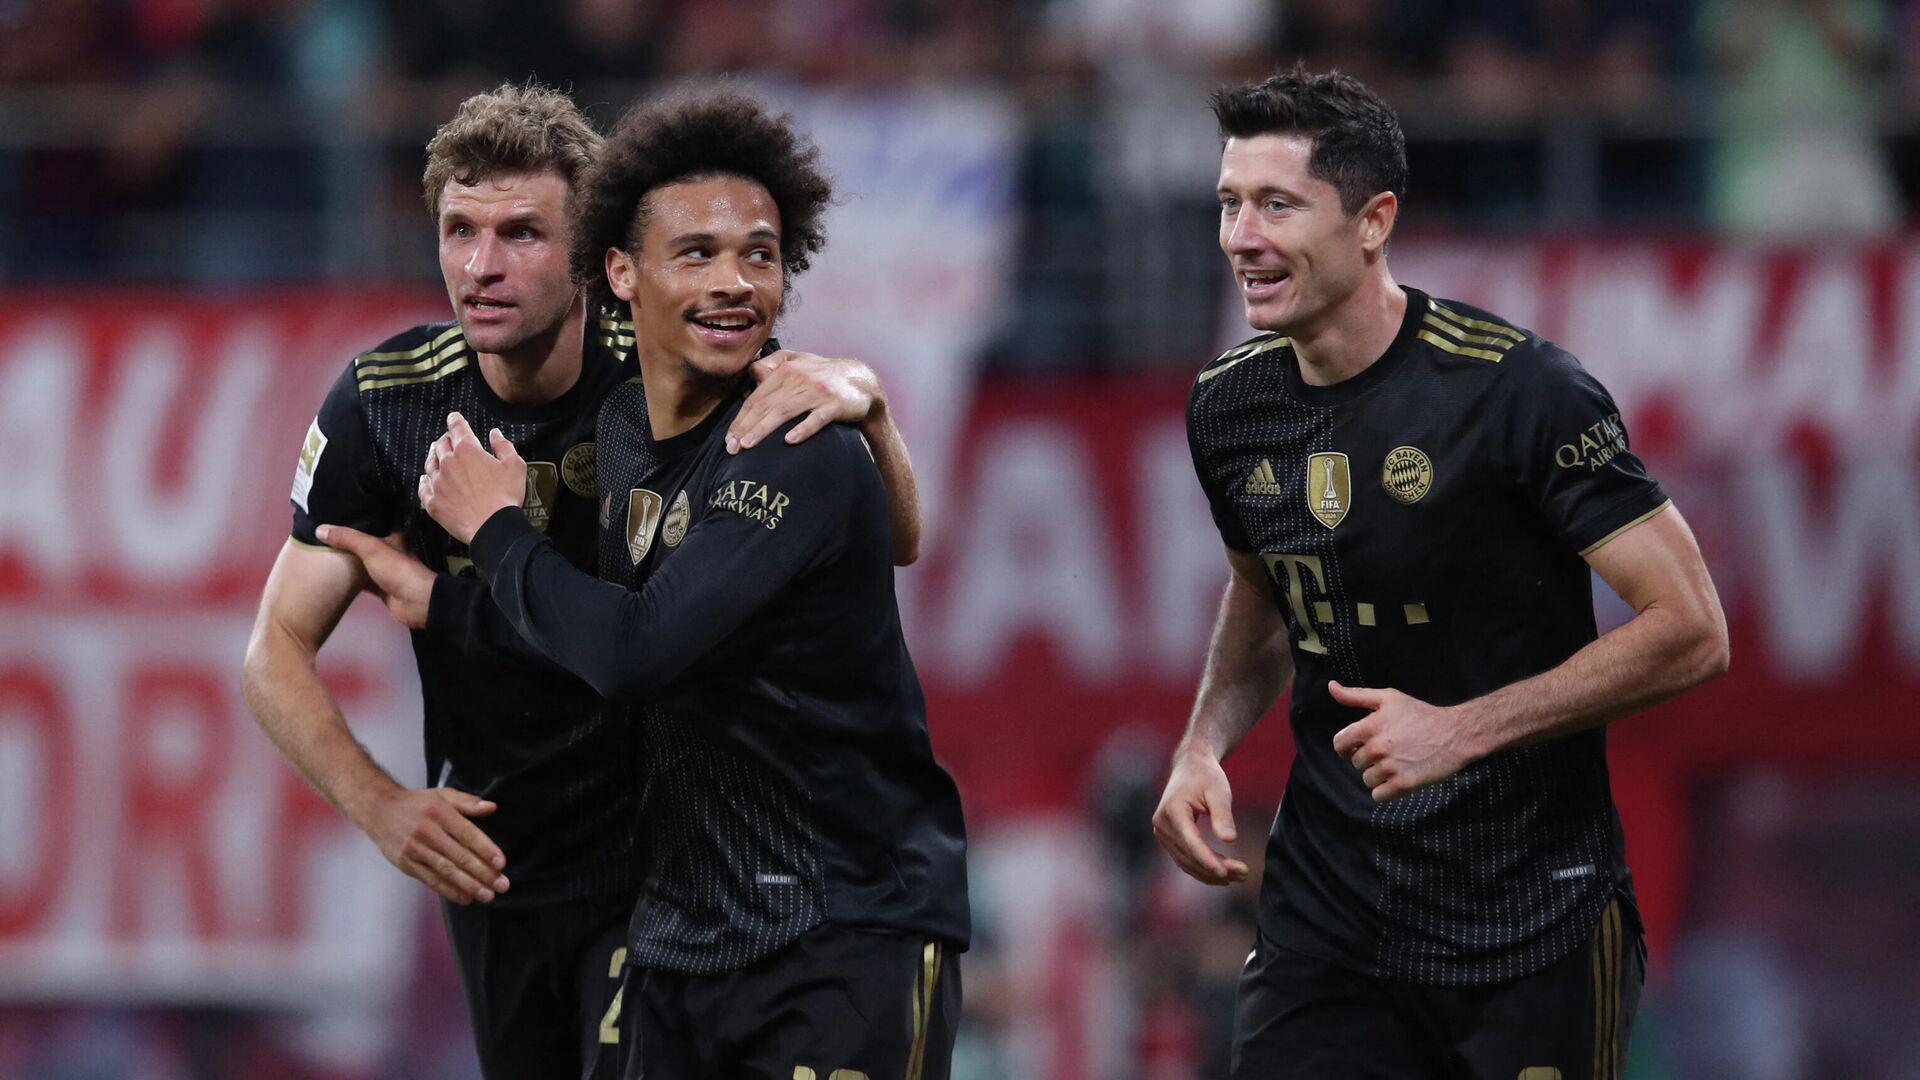 (L-R) Bayern Munich's German forward Thomas Mueller, Bayern Munich's German midfielder Leroy Sane and Bayern Munich's Polish forward Robert Lewandowski celebrate the 0-3 during the German first division Bundesliga football match between RB Leipzig and FC Bayern Munich in Leipzig, eastern Germany, on September 11, 2021. (Photo by Ronny HARTMANN / AFP) / DFL REGULATIONS PROHIBIT ANY USE OF PHOTOGRAPHS AS IMAGE SEQUENCES AND/OR QUASI-VIDEO - РИА Новости, 1920, 11.09.2021